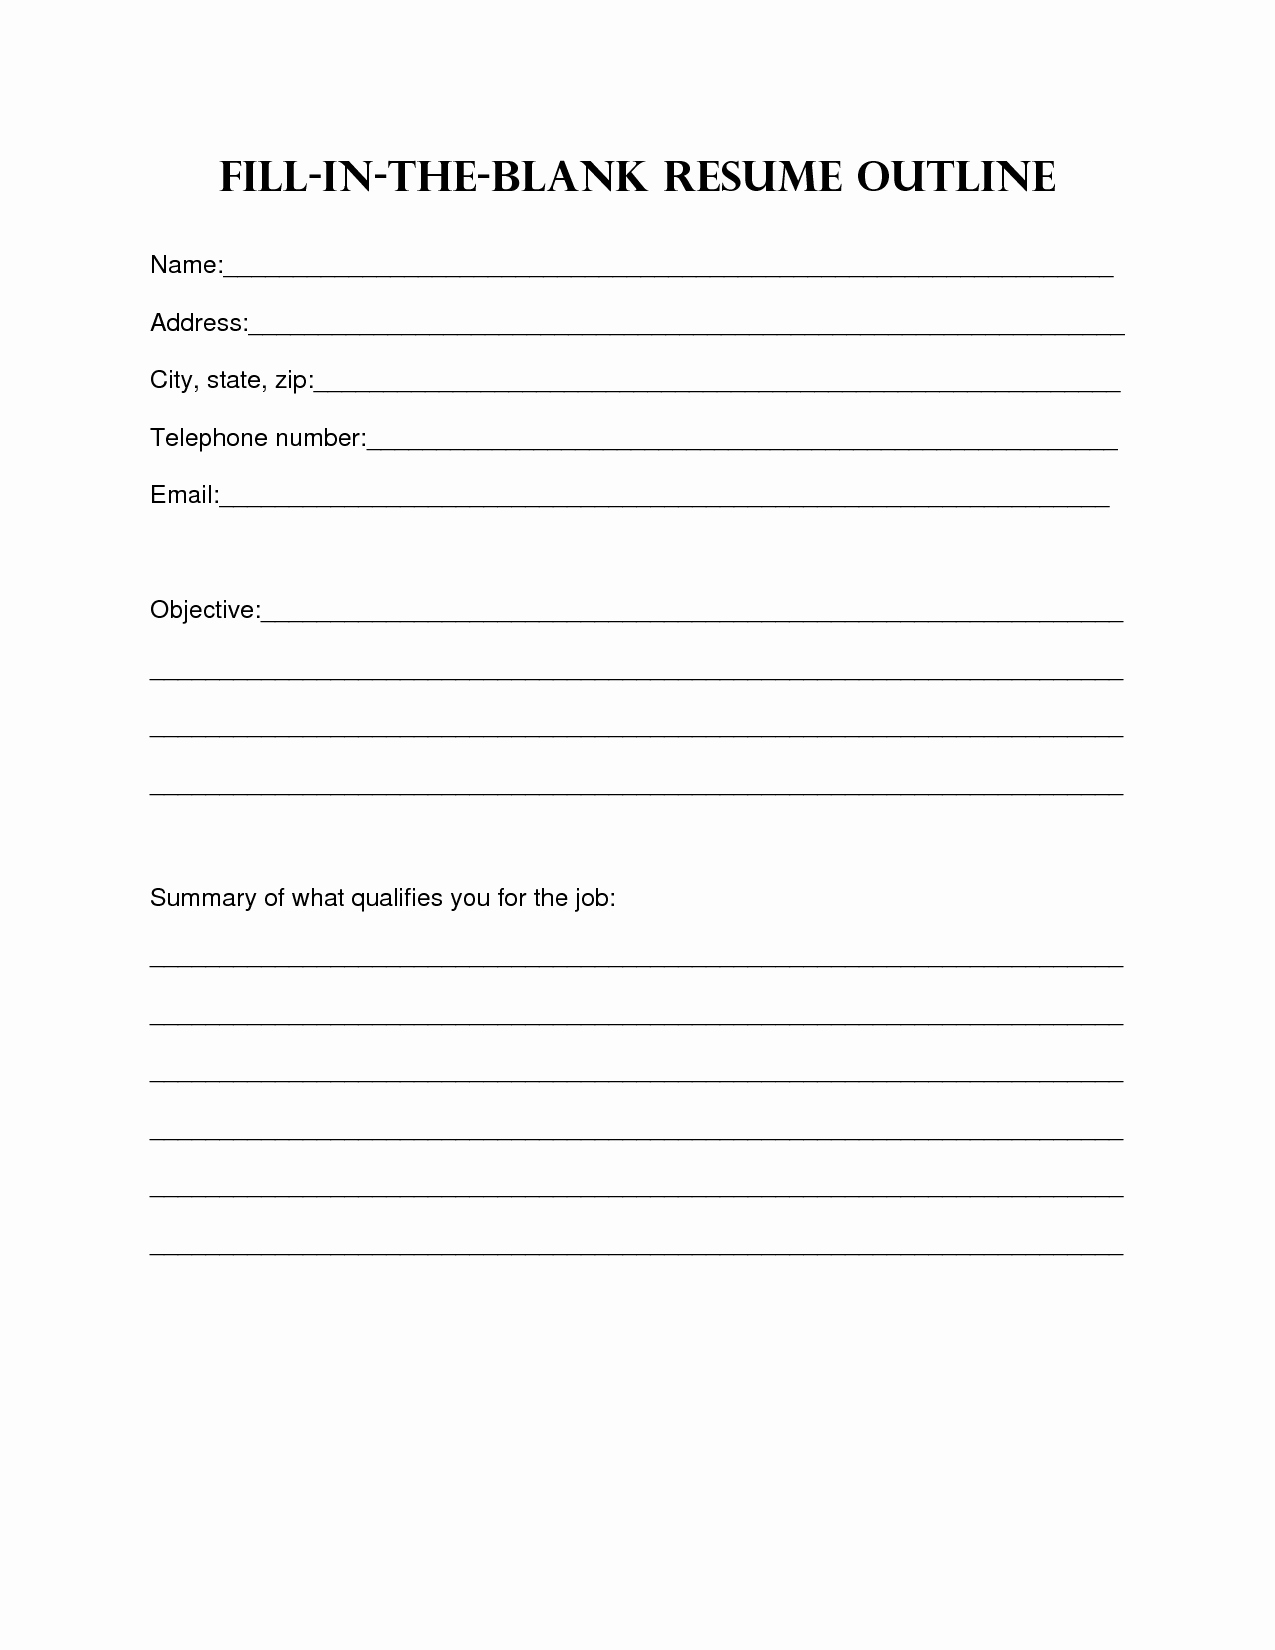 Resume Example Basic Sample Blank form Fill In the Pdf